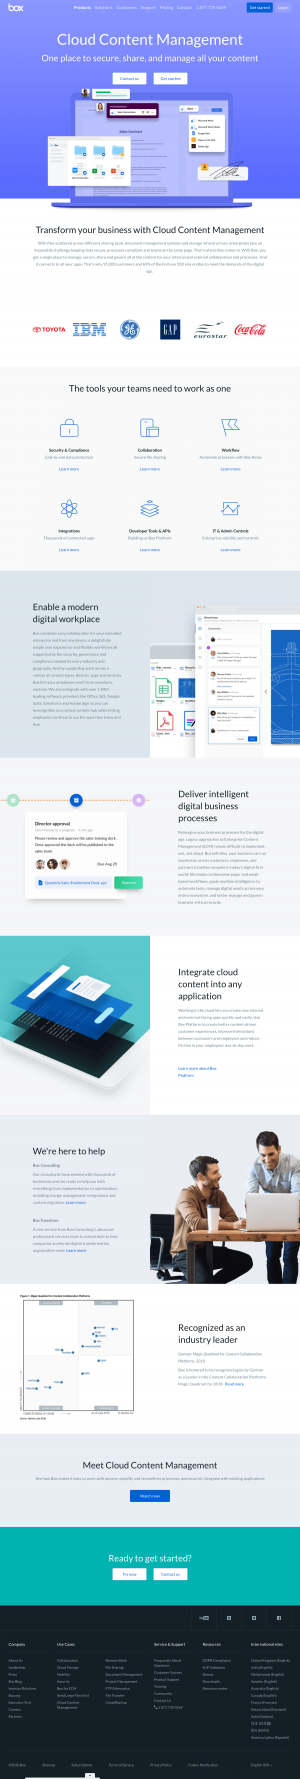 Box – Features page 1